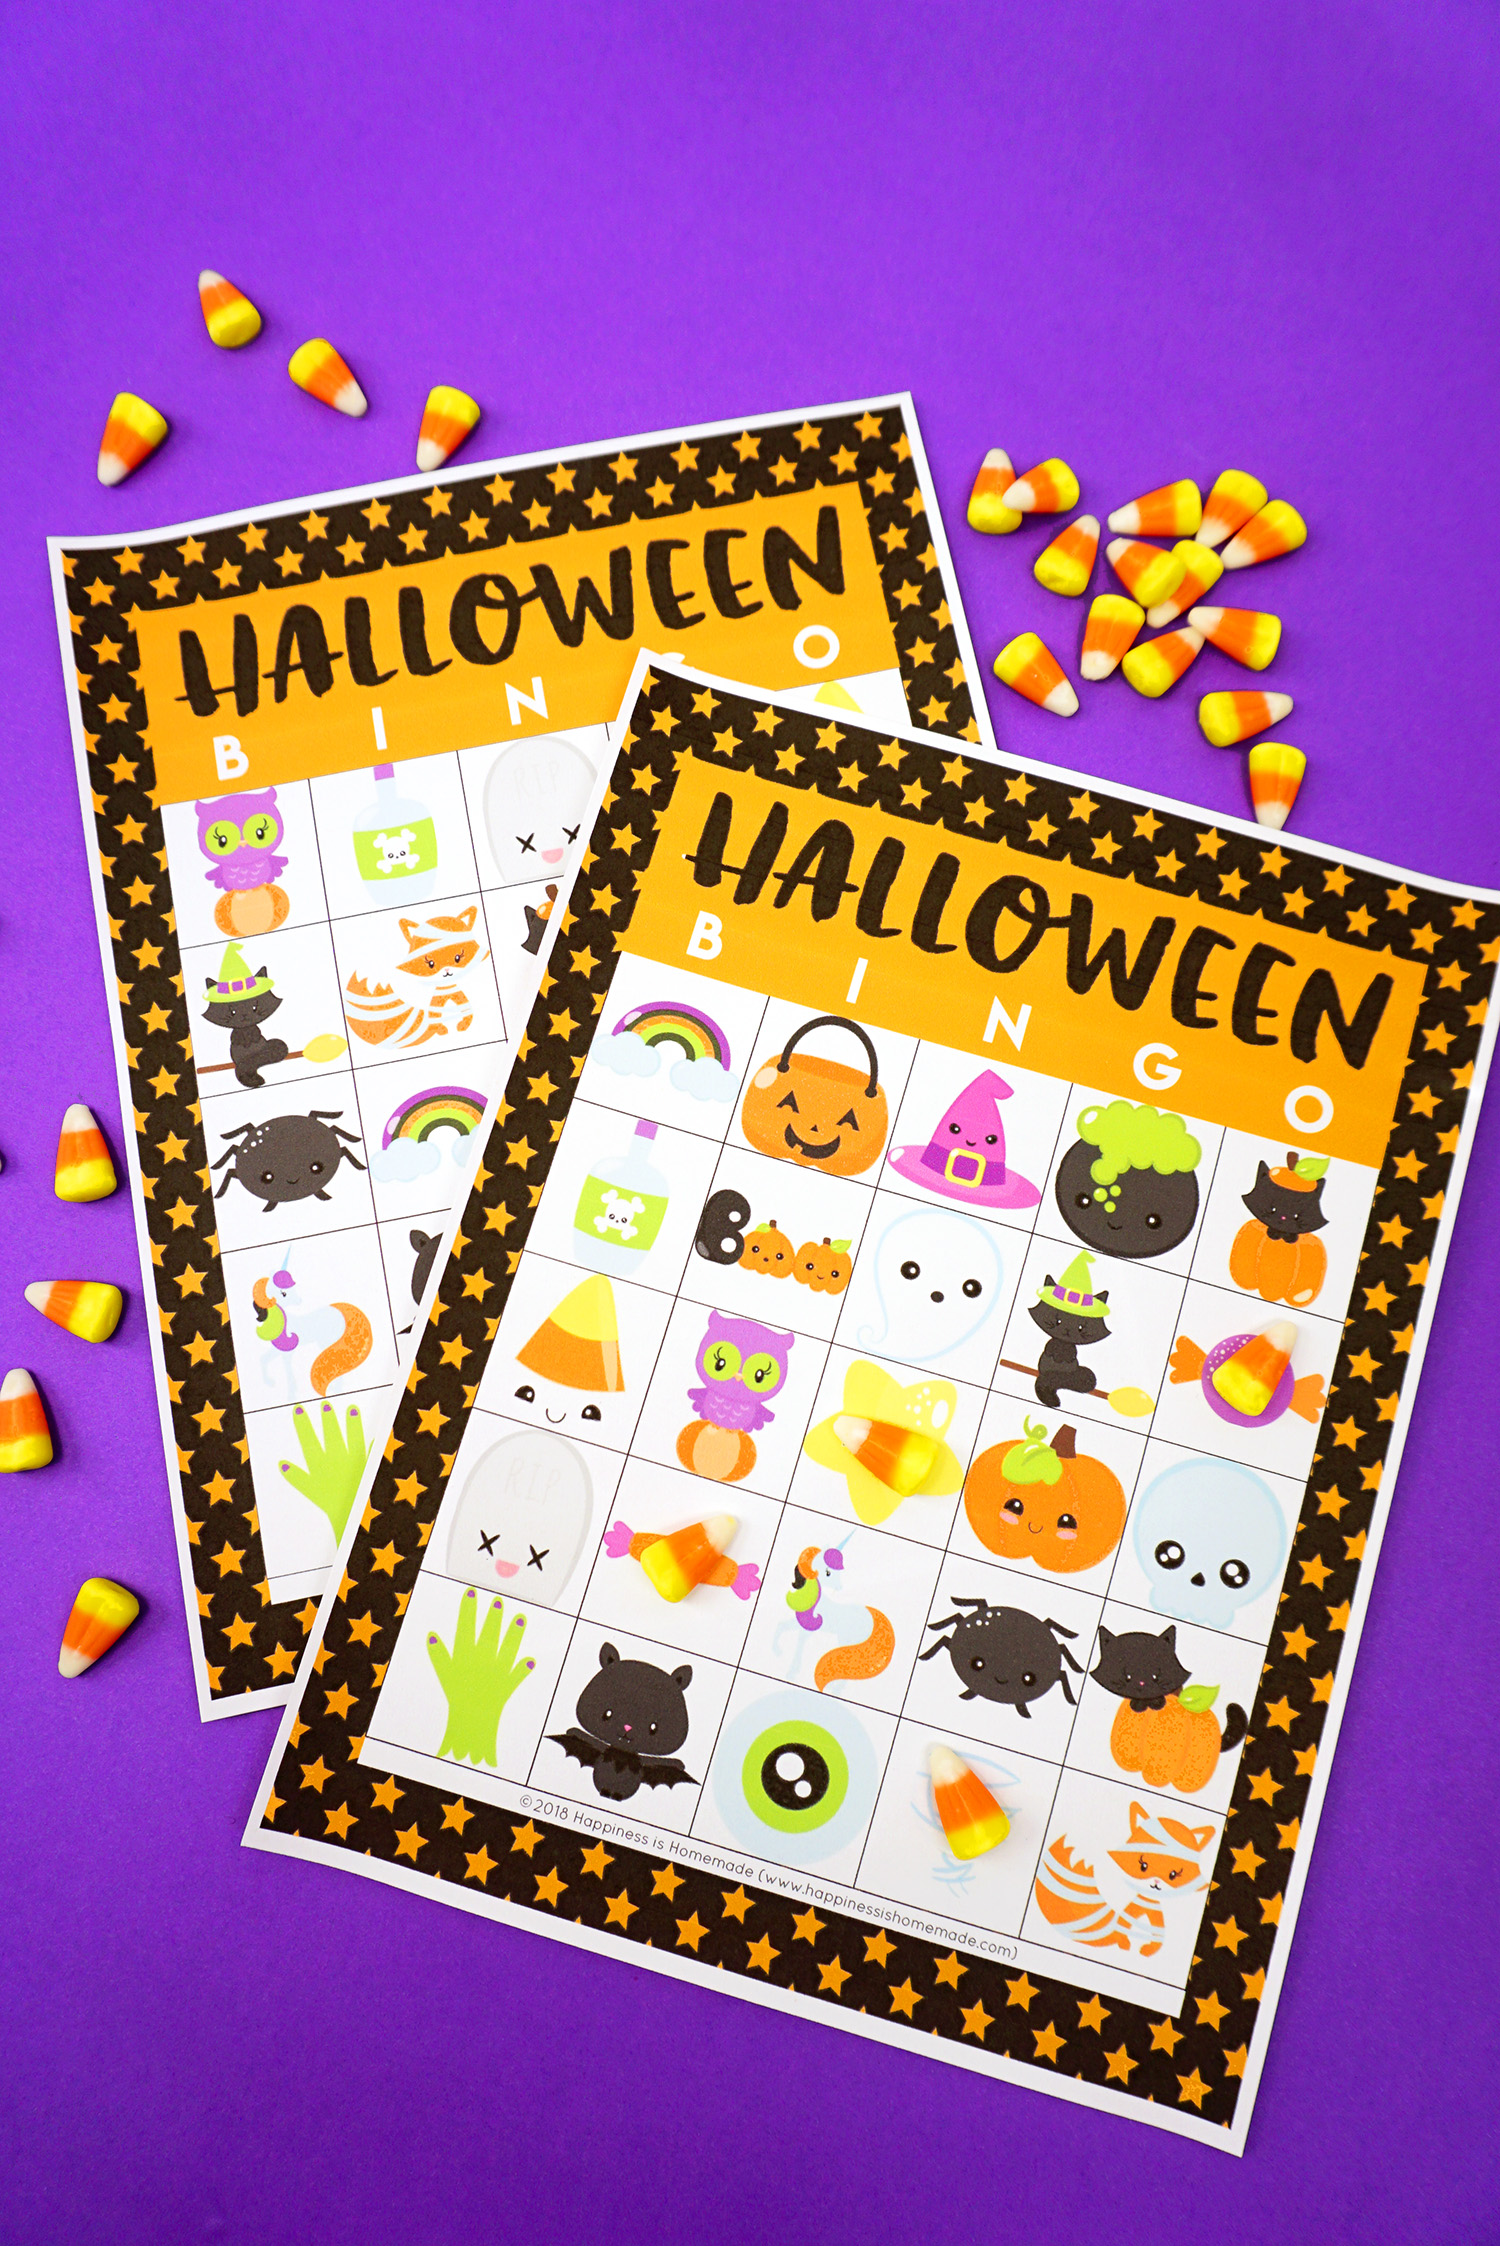 Printable Halloween Bingo Game Cards for Kids and Teachers